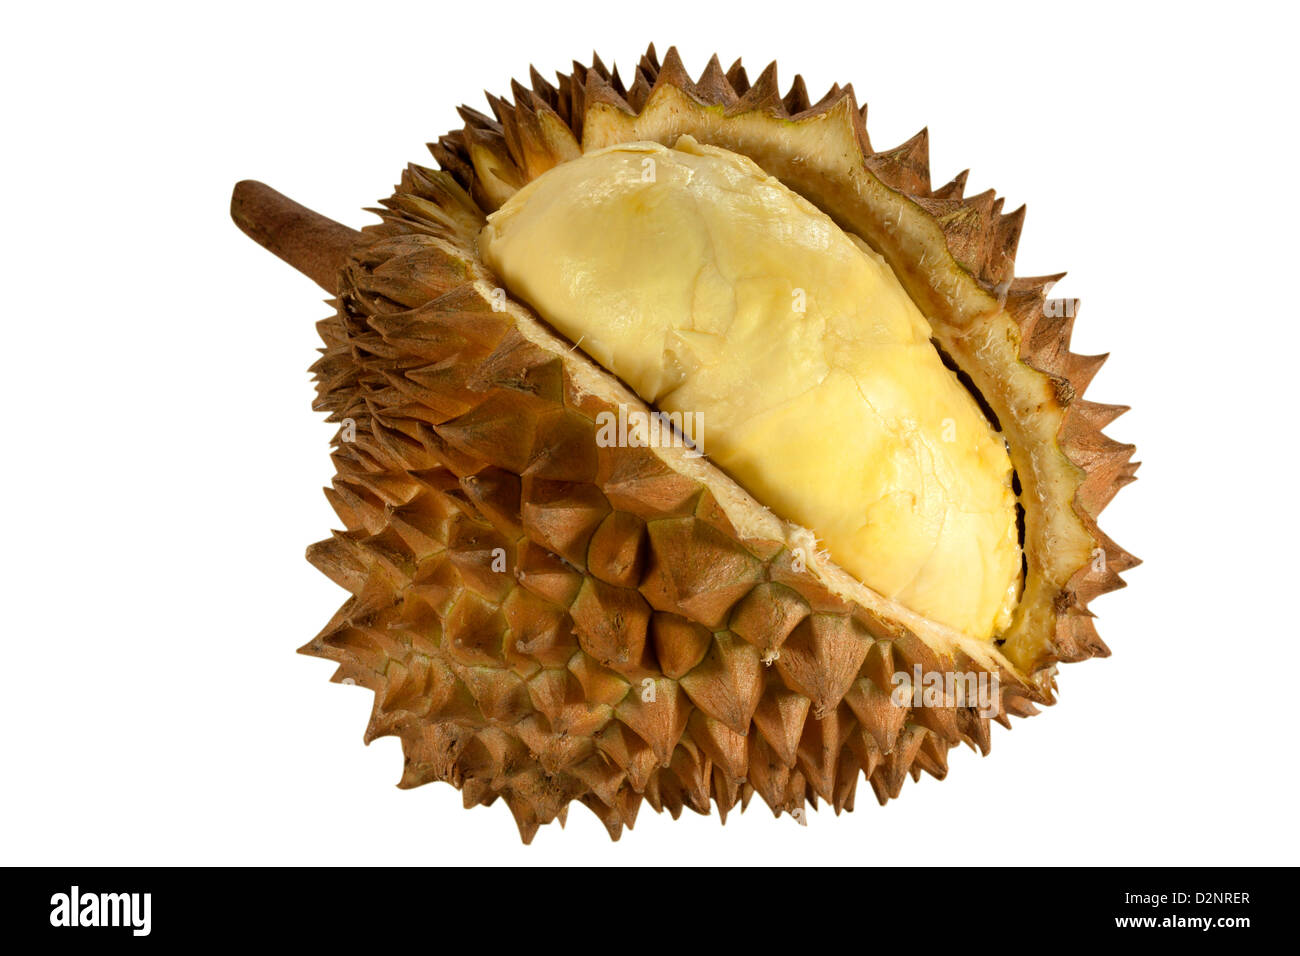 Durian fruit smells sweet with high carbohydrates. - Stock Image